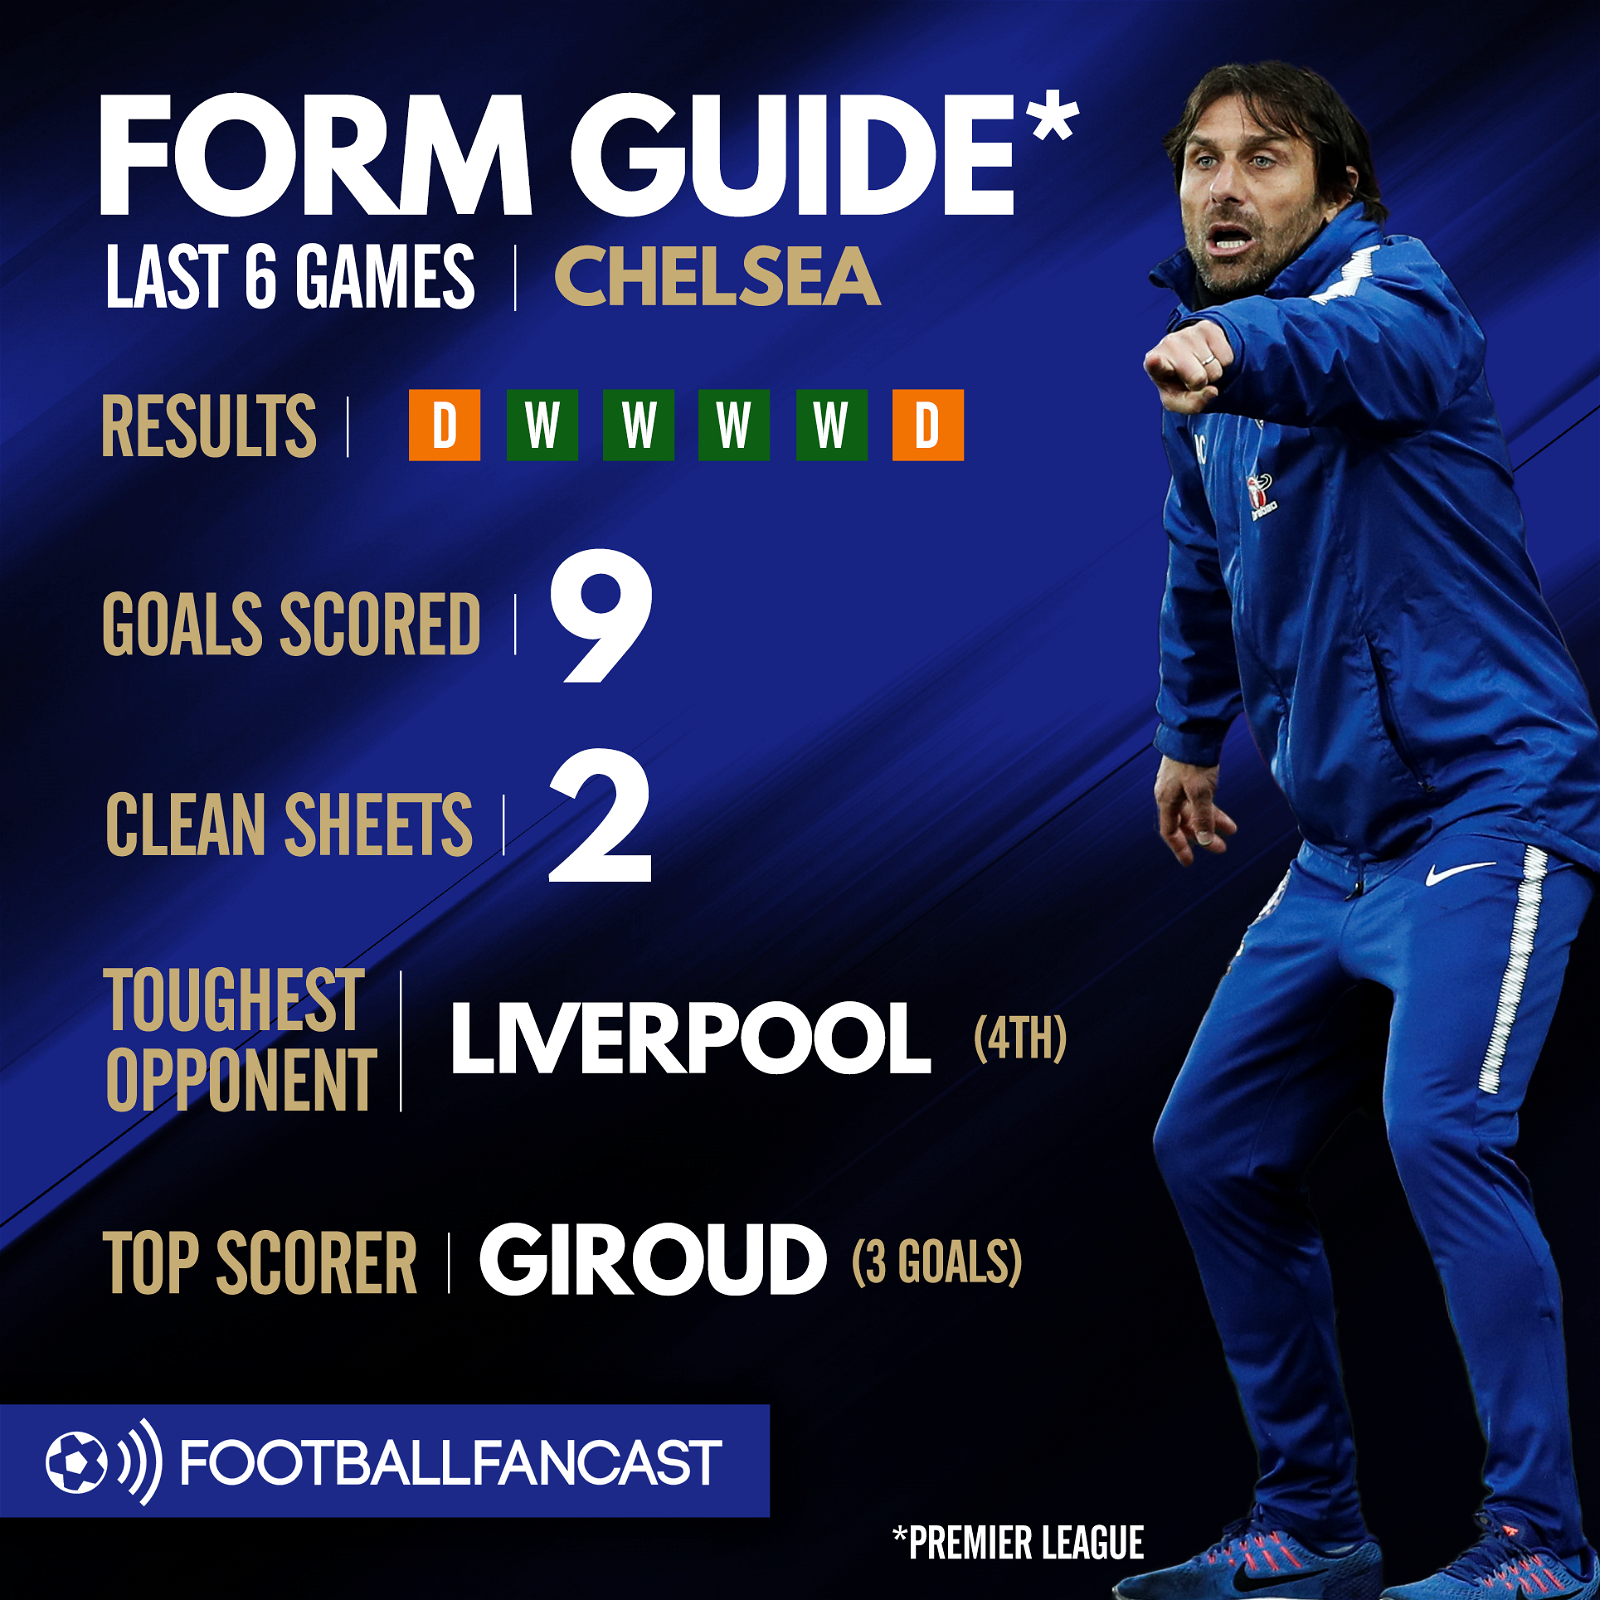 Chelsea form guide ahead of Newcastle clash